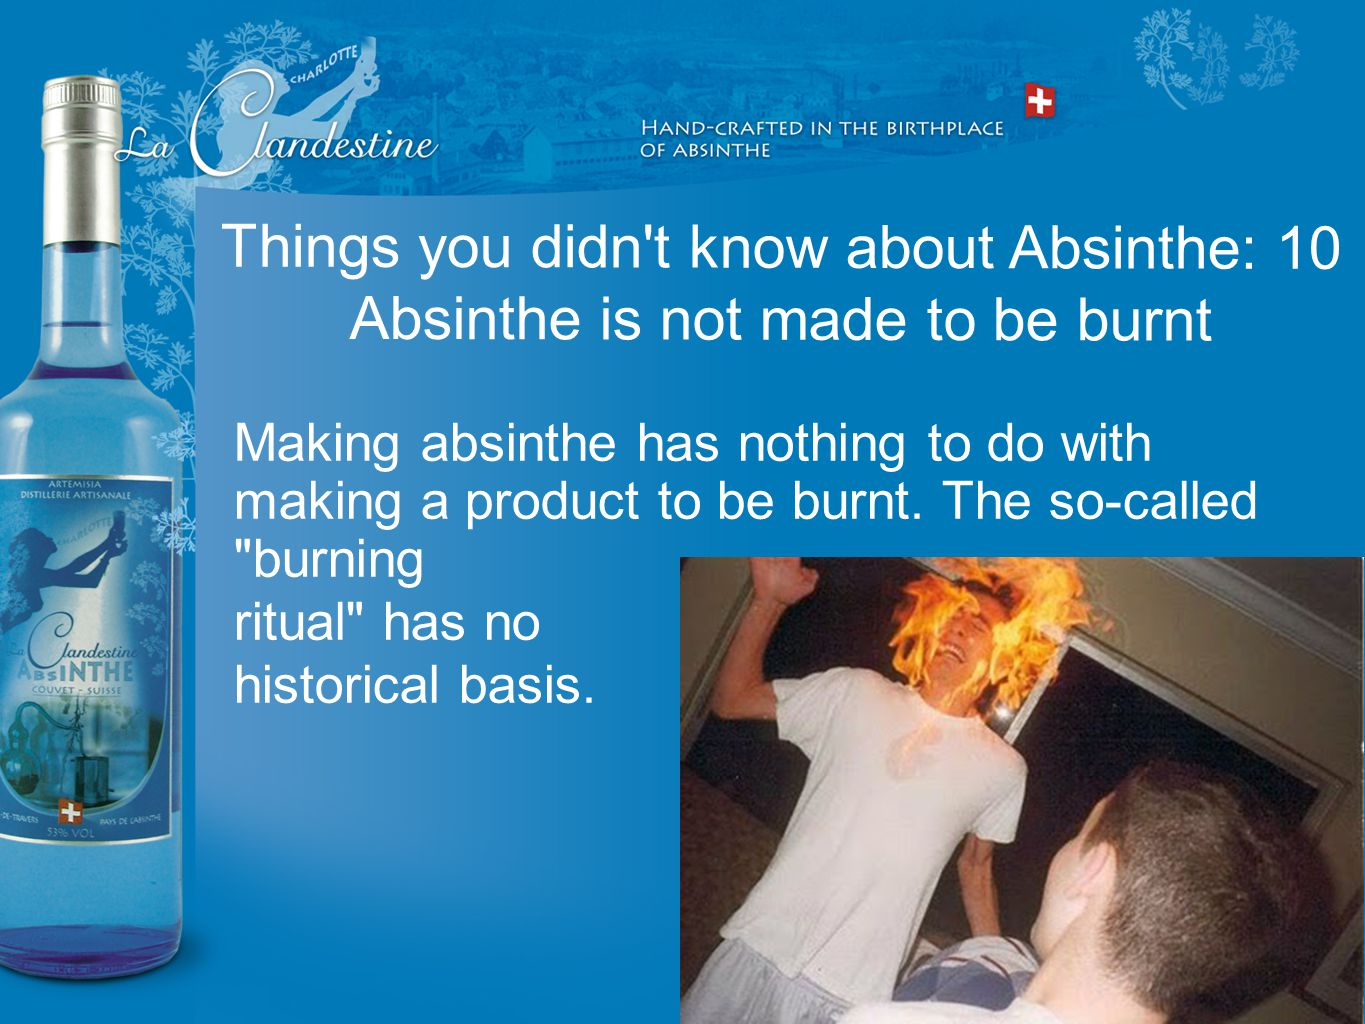 Making absinthe has nothing to do with making a product to be burnt. The so-called